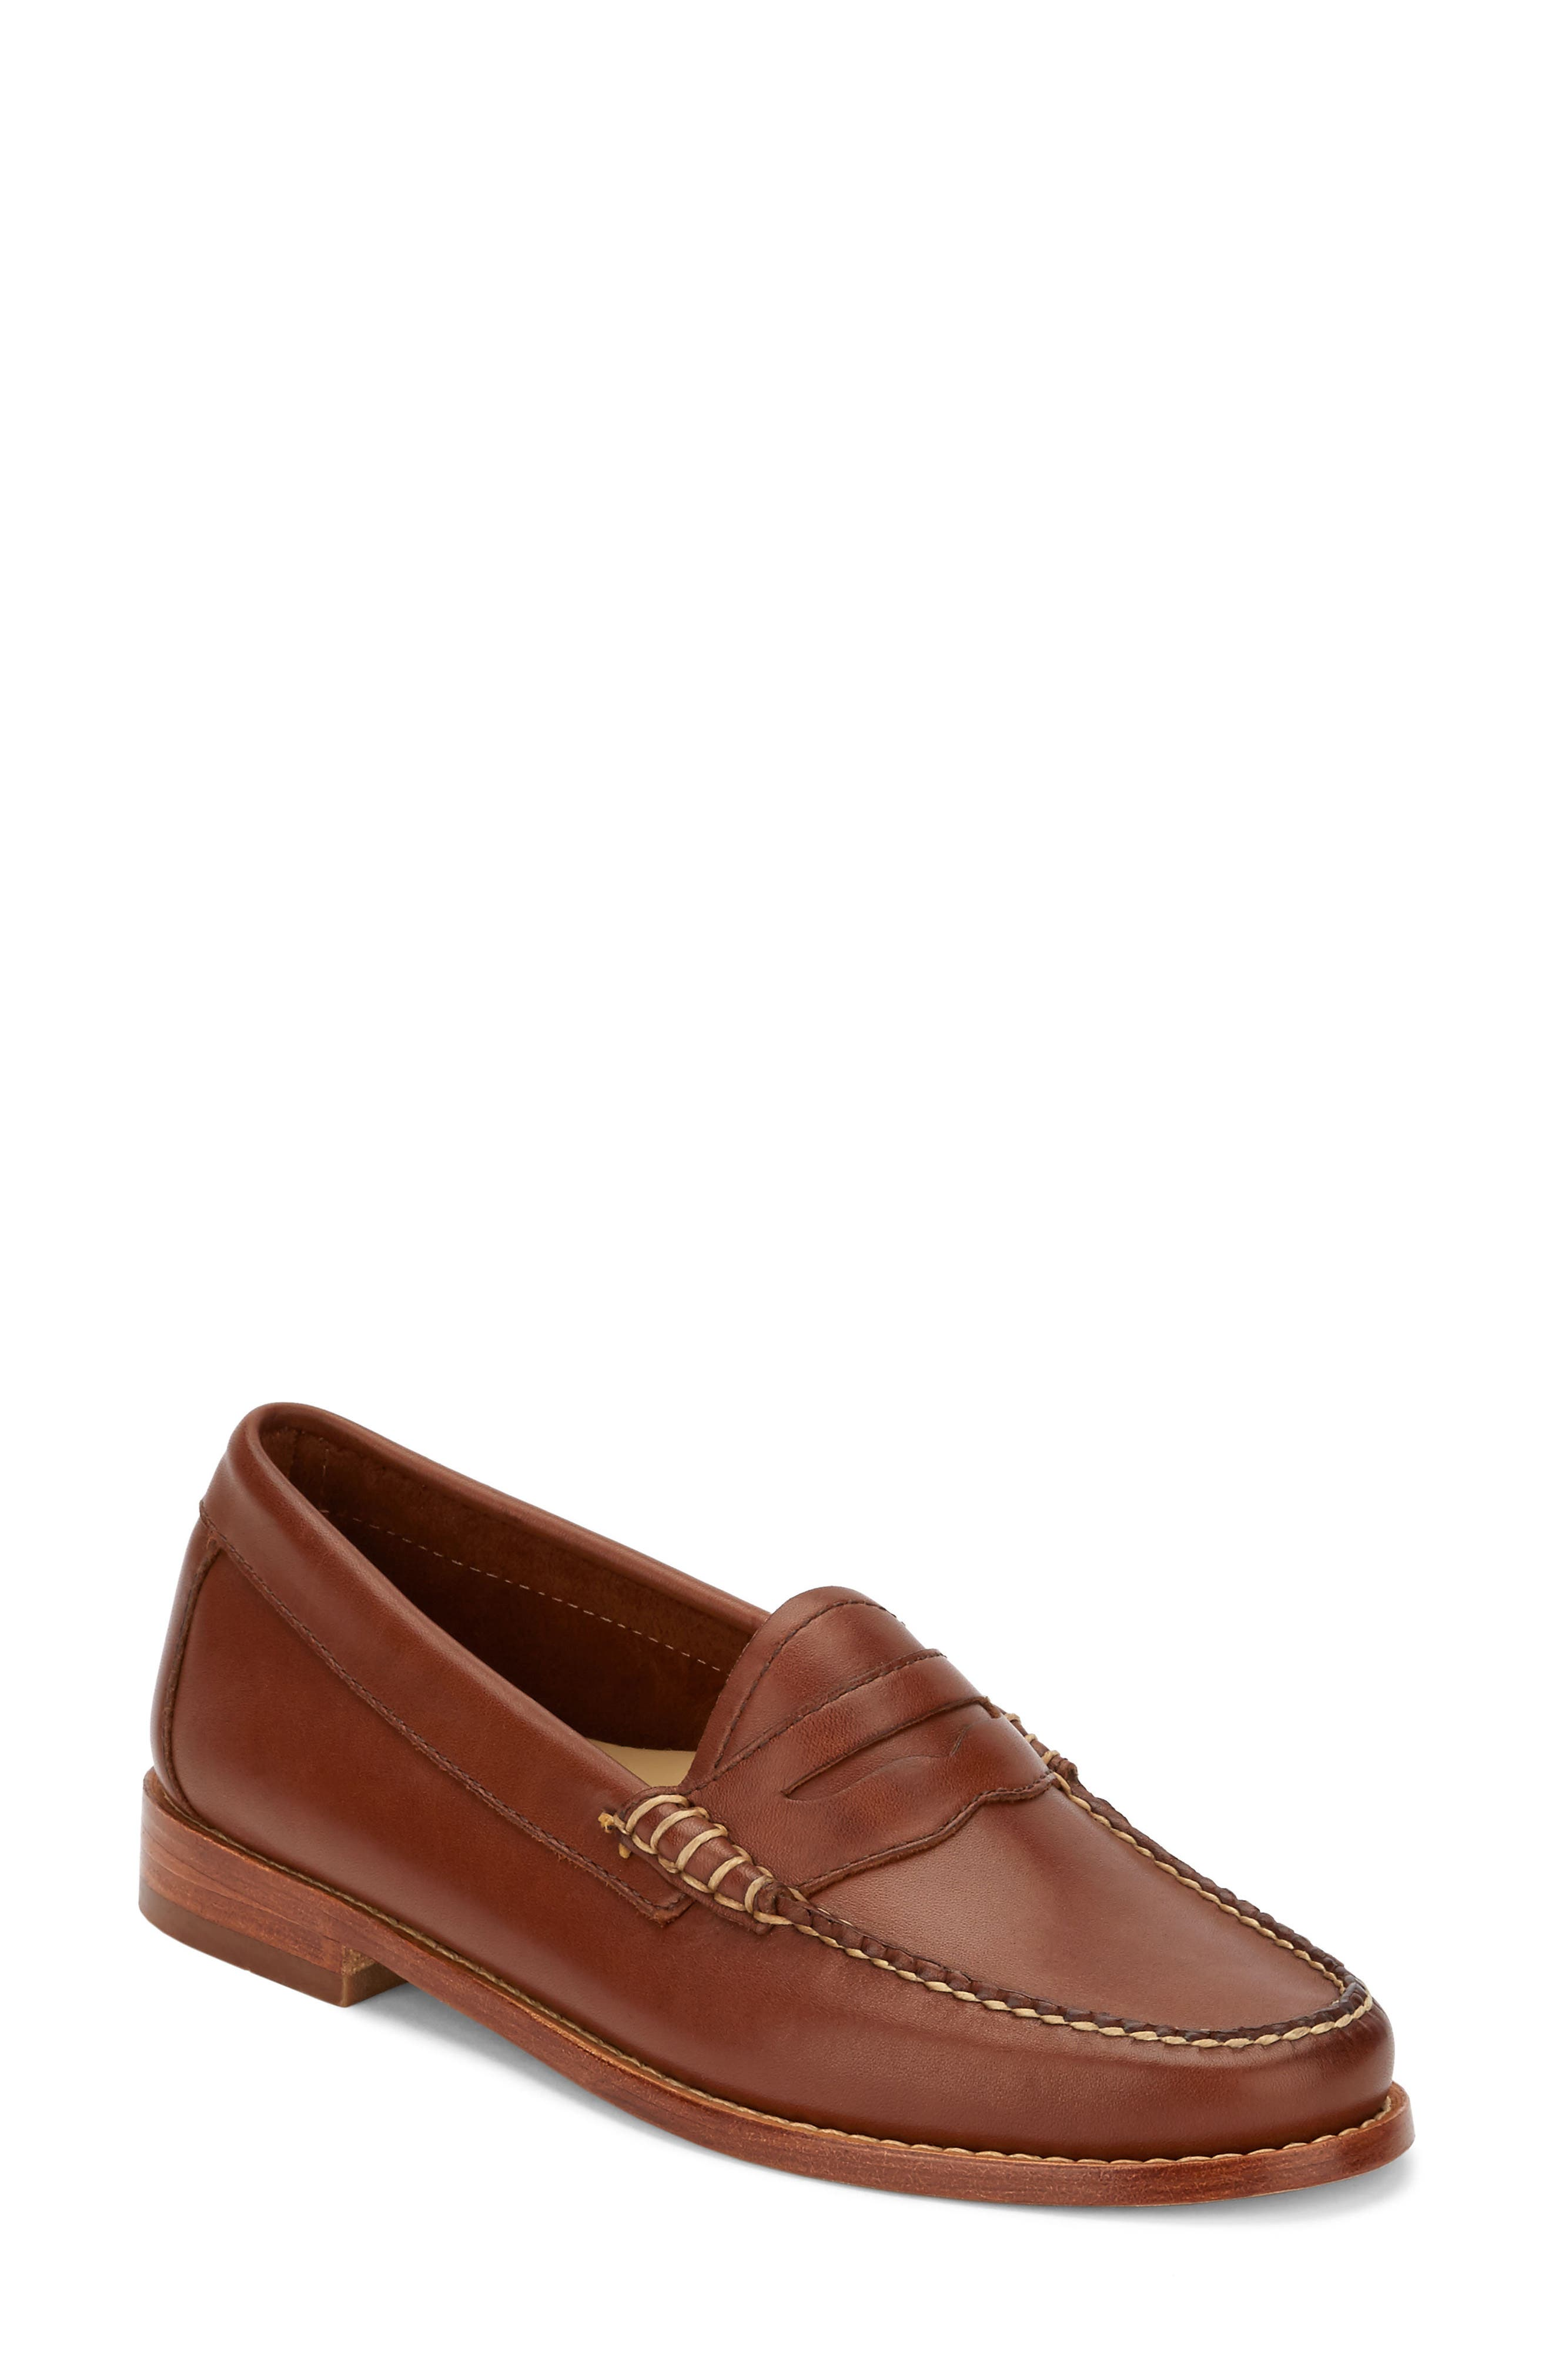 'Whitney' Loafer,                         Main,                         color, COGNAC LEATHER